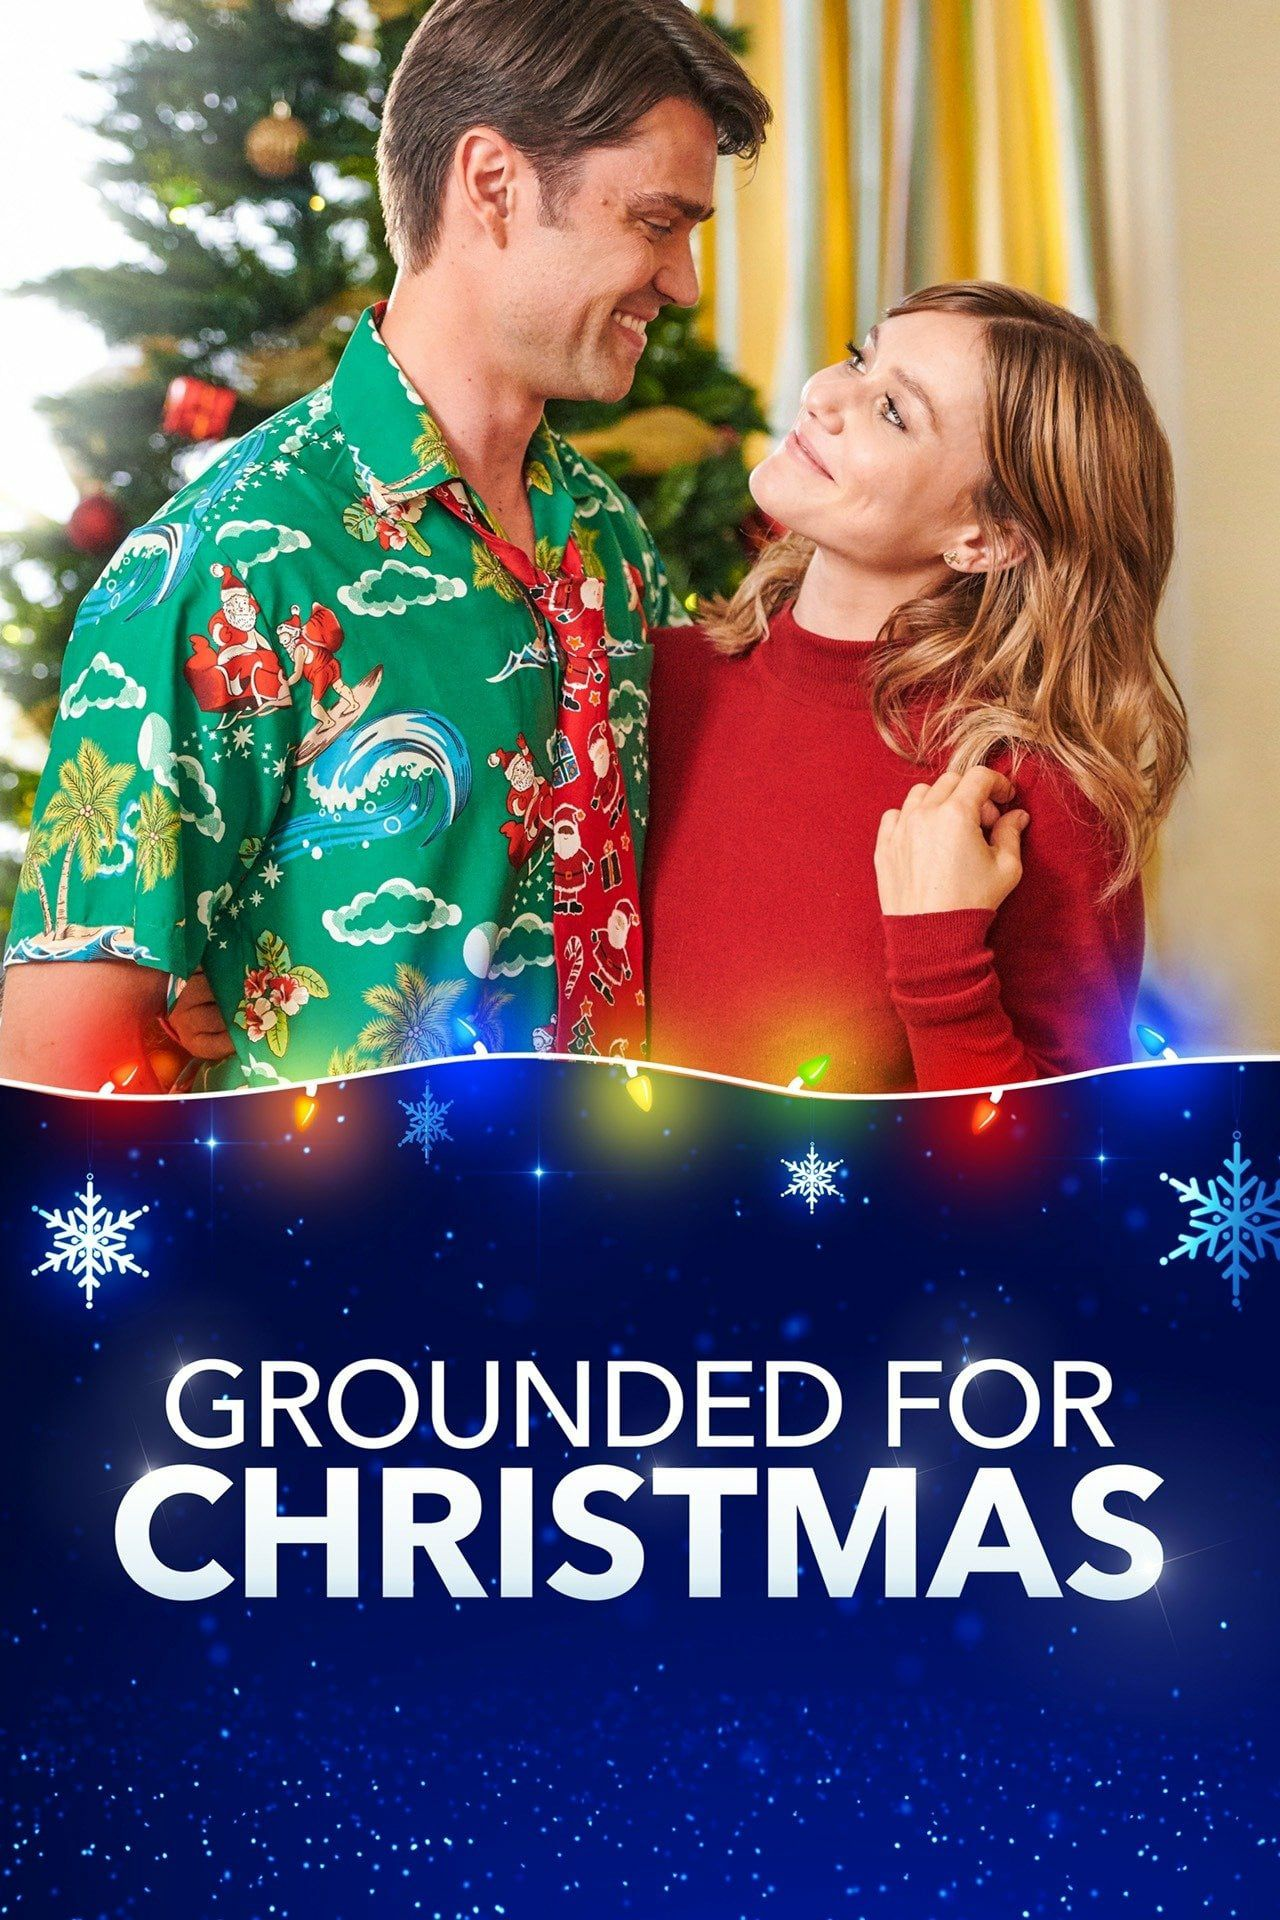 Grounded for Christmas - Film (2020)